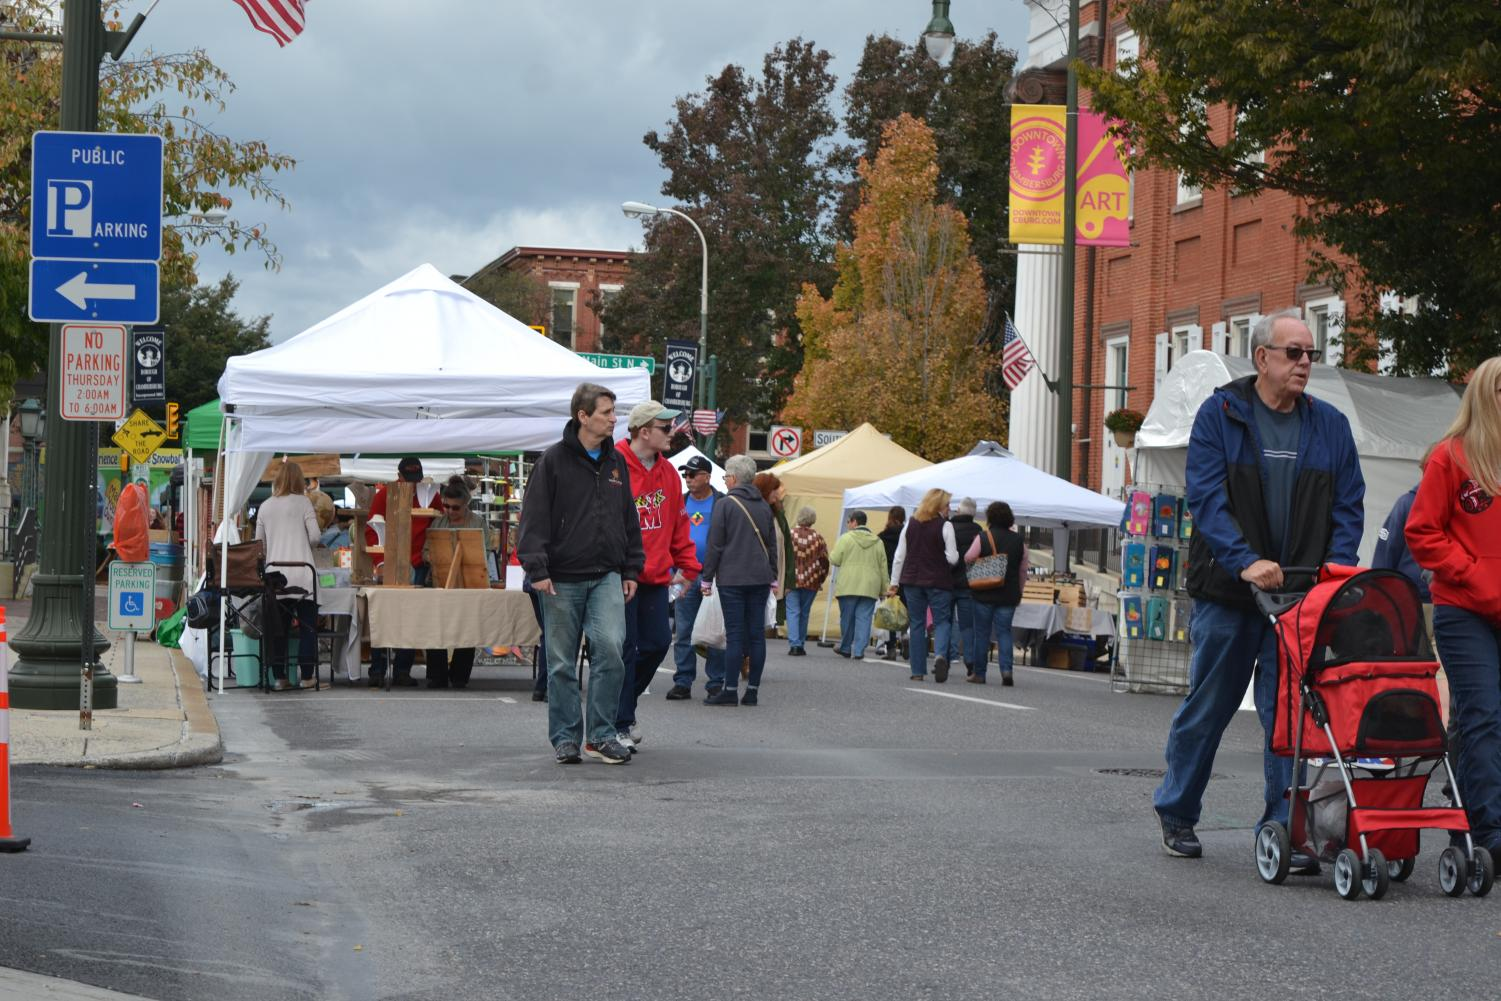 Vendors are set up along the square of Chambersburg for Applefest.